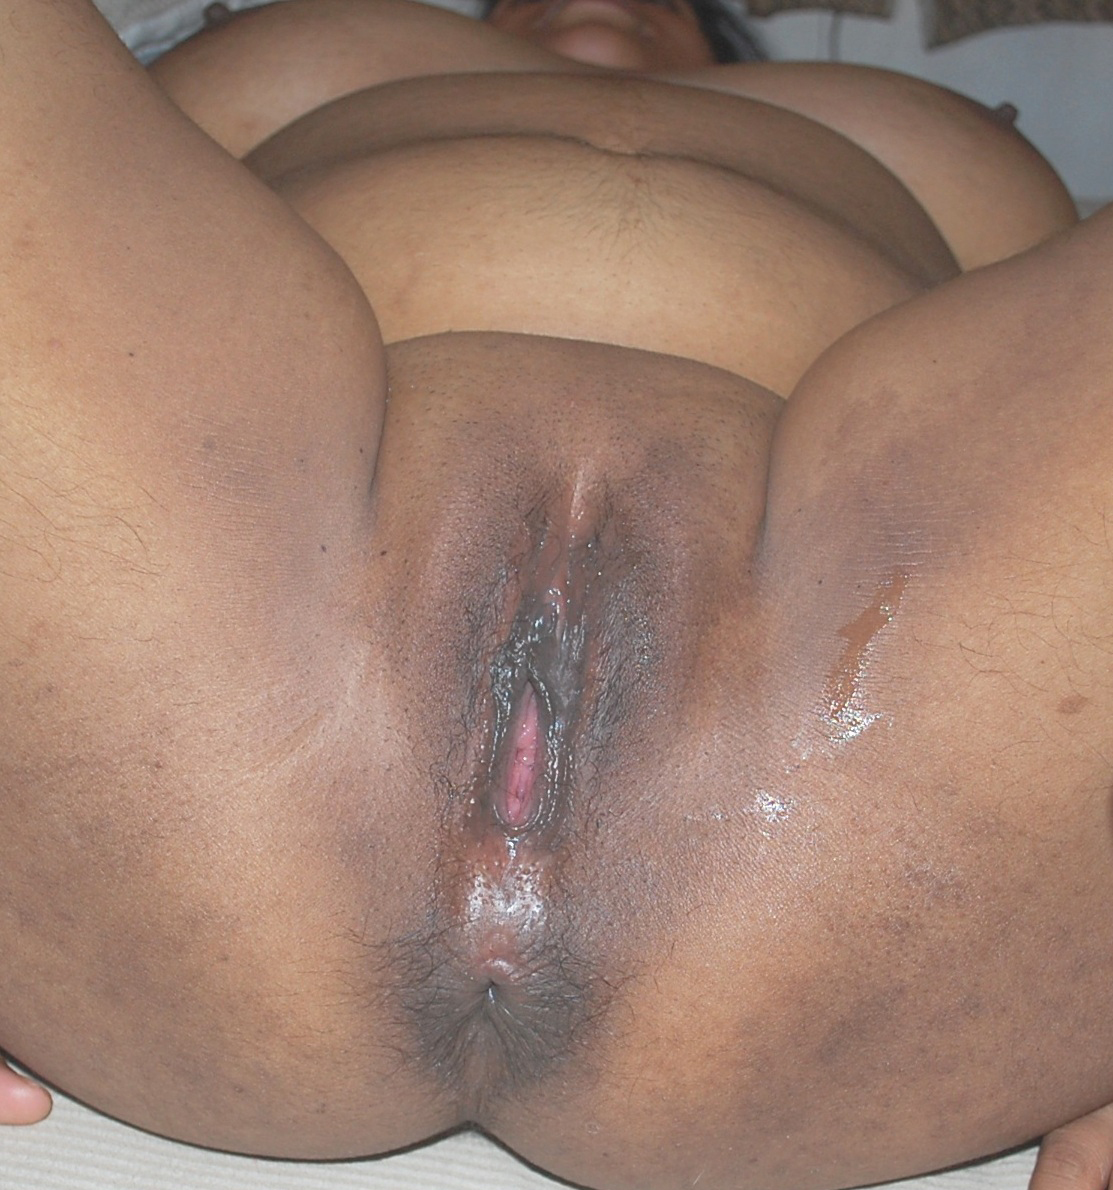 Not believe. Tamil aunty big pussy simply ridiculous